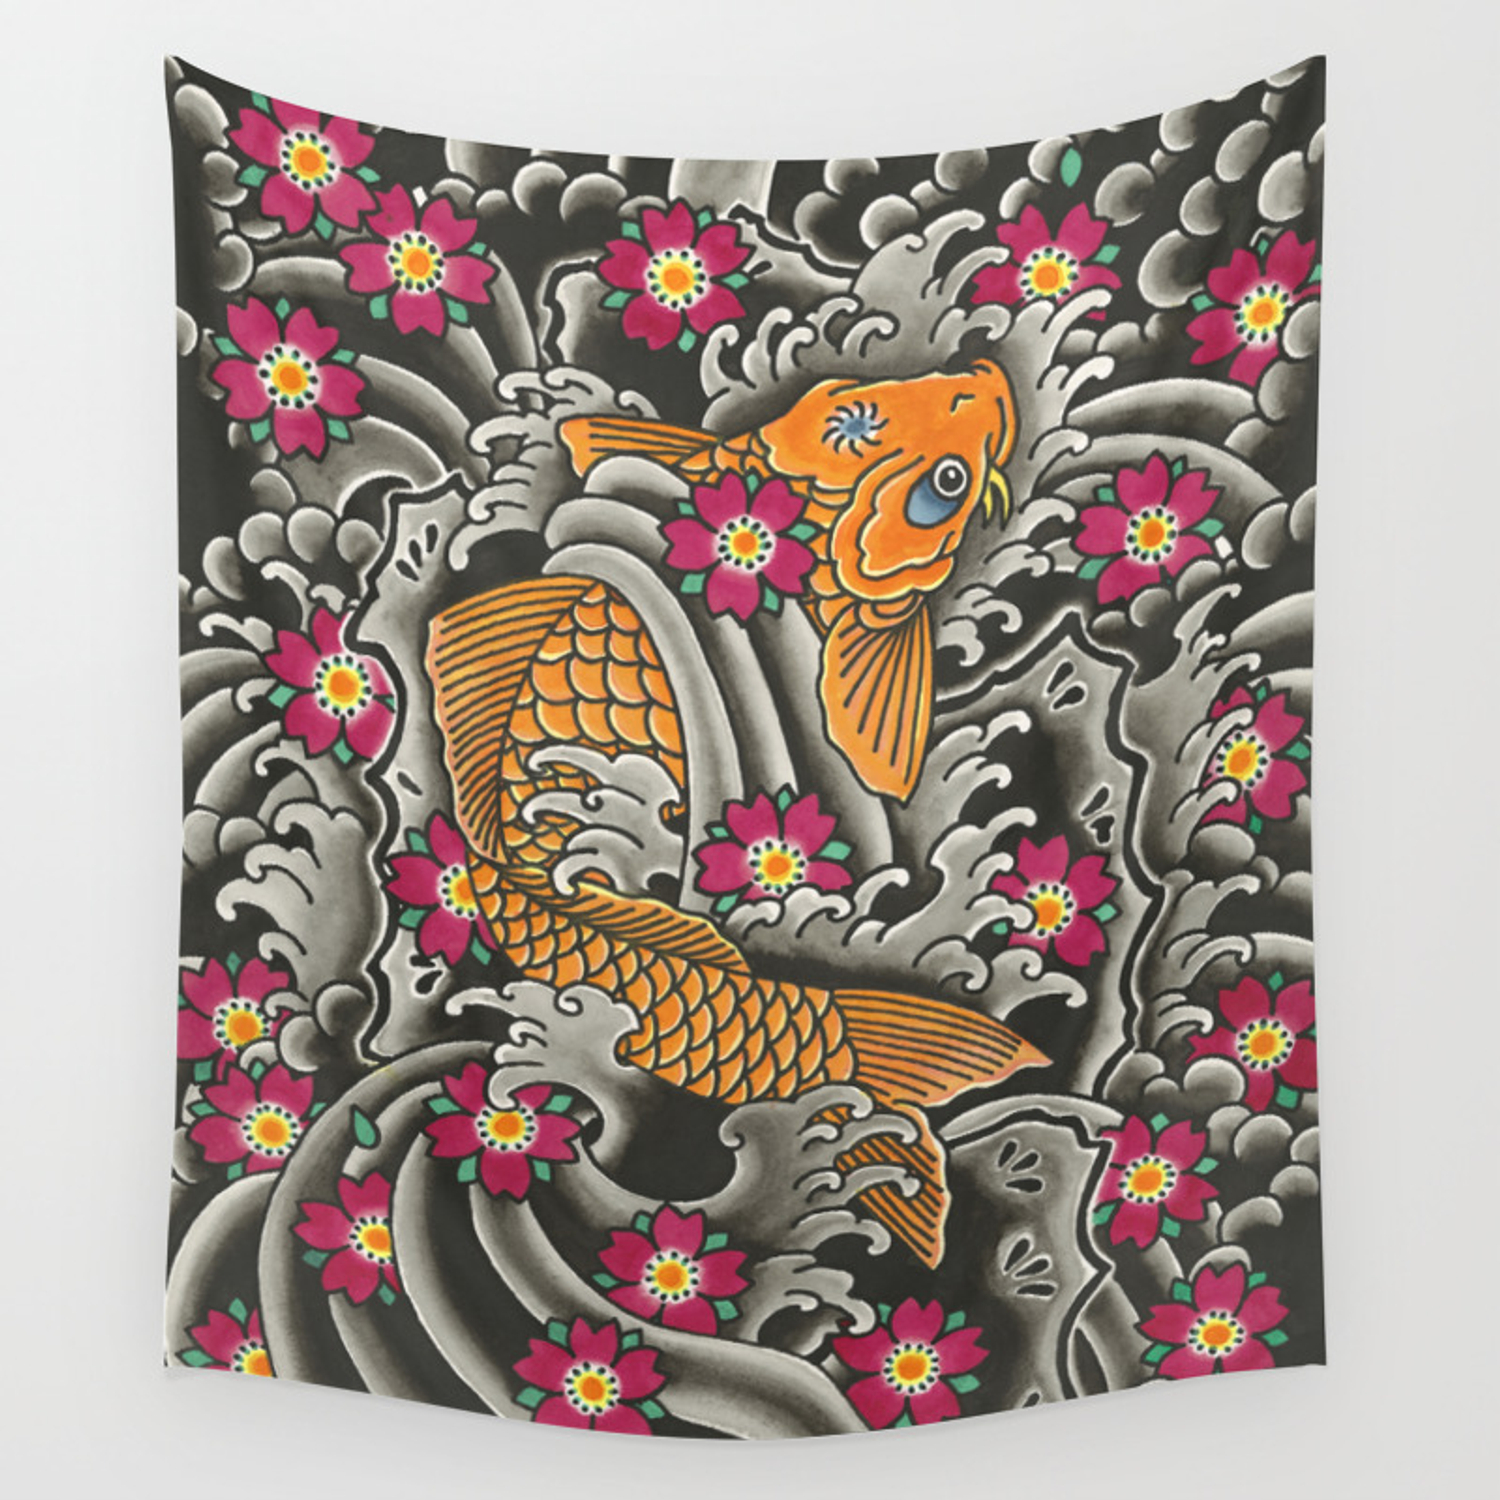 8a9e6e42a Japanese Koi Fish and Cherry Blossoms Tattoo Art Wall Tapestry by ...